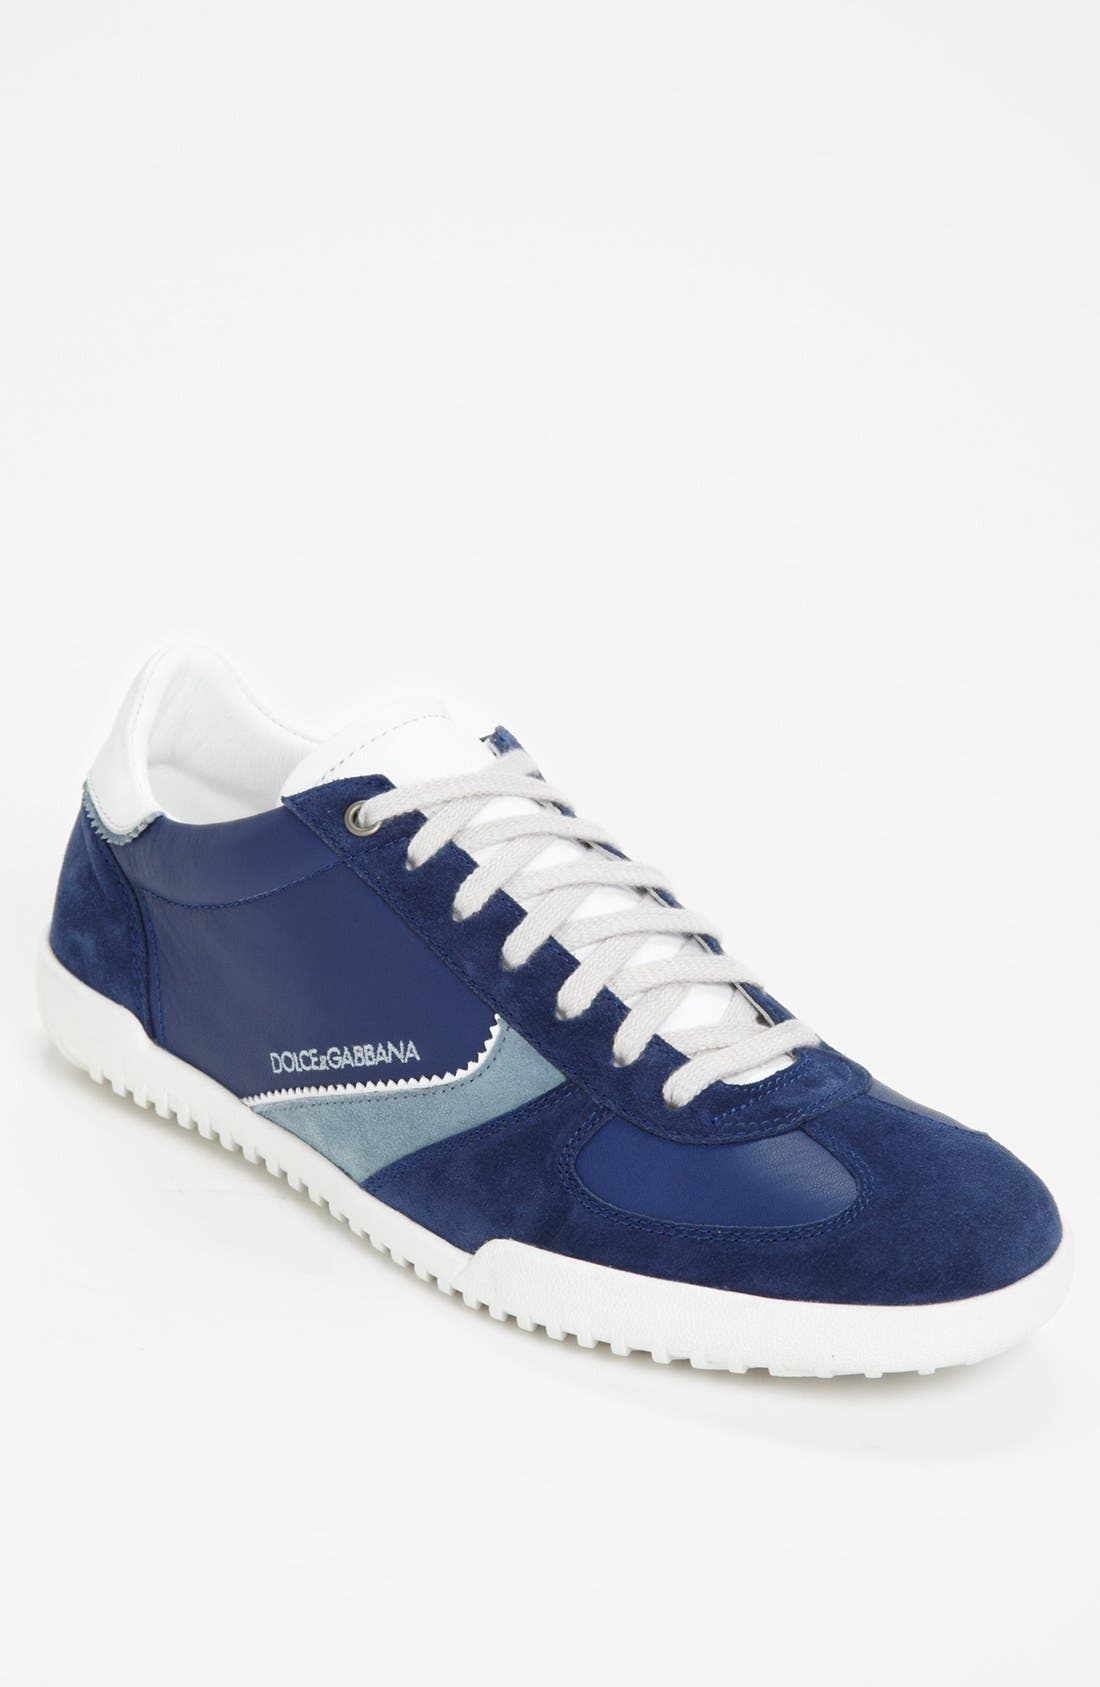 Alternate Image 1 Selected - Dolce&Gabbana 'Parcours' Sneaker